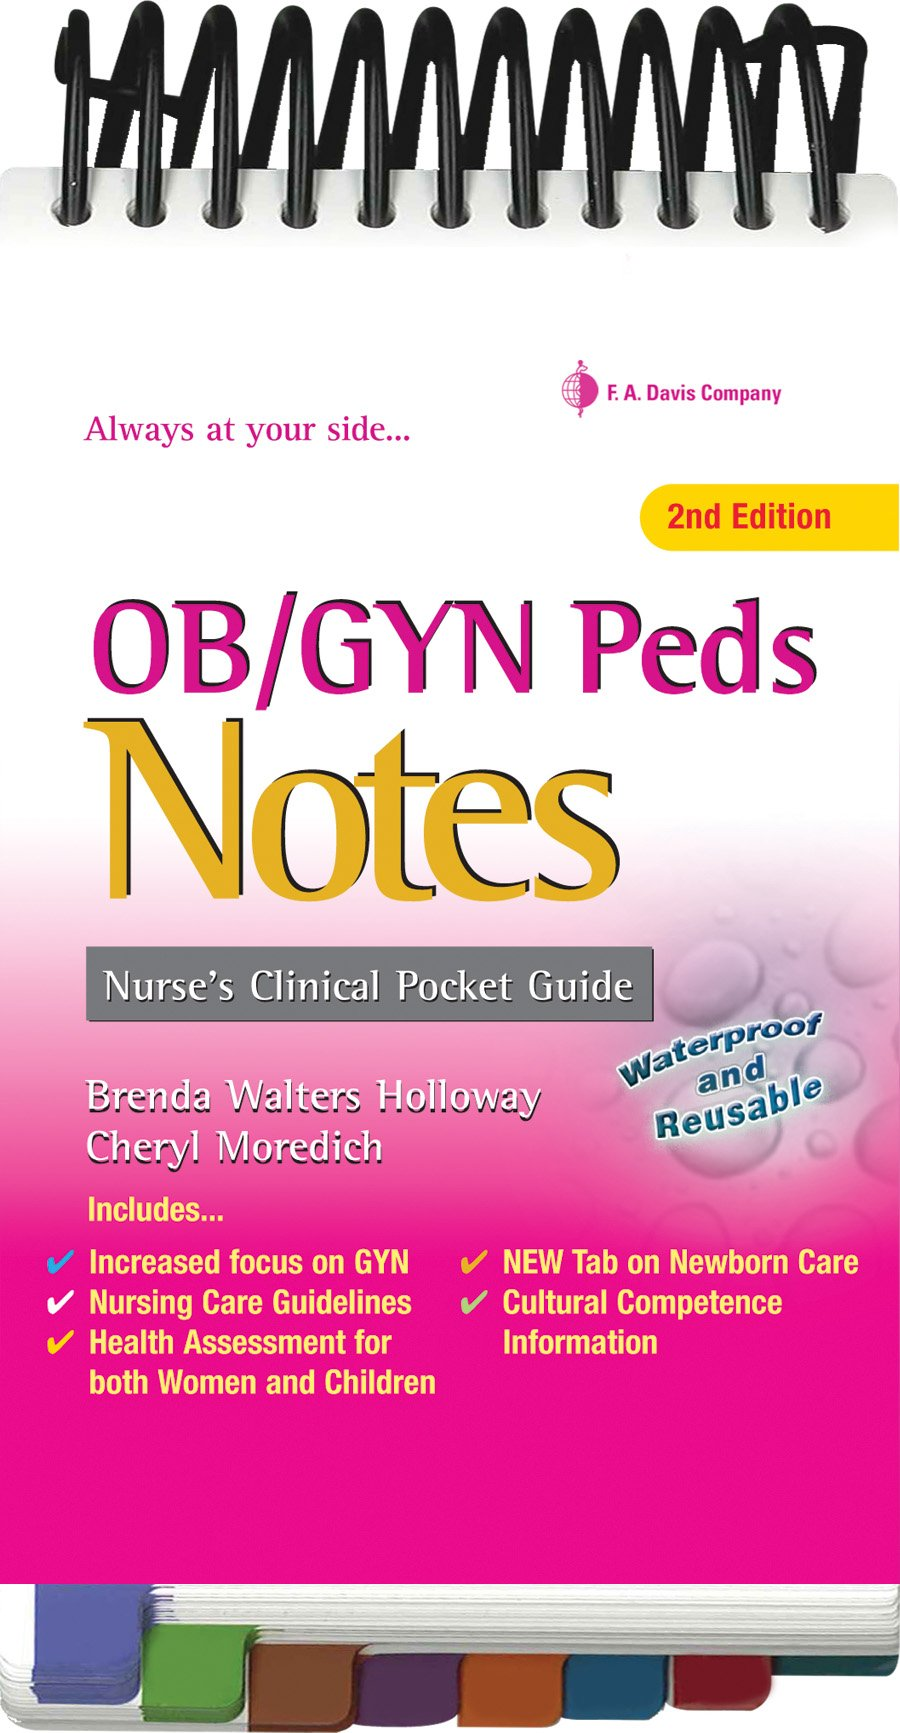 Obgyn And Peds Notes Nurses Clinical Pocket Guide Brenda Walters